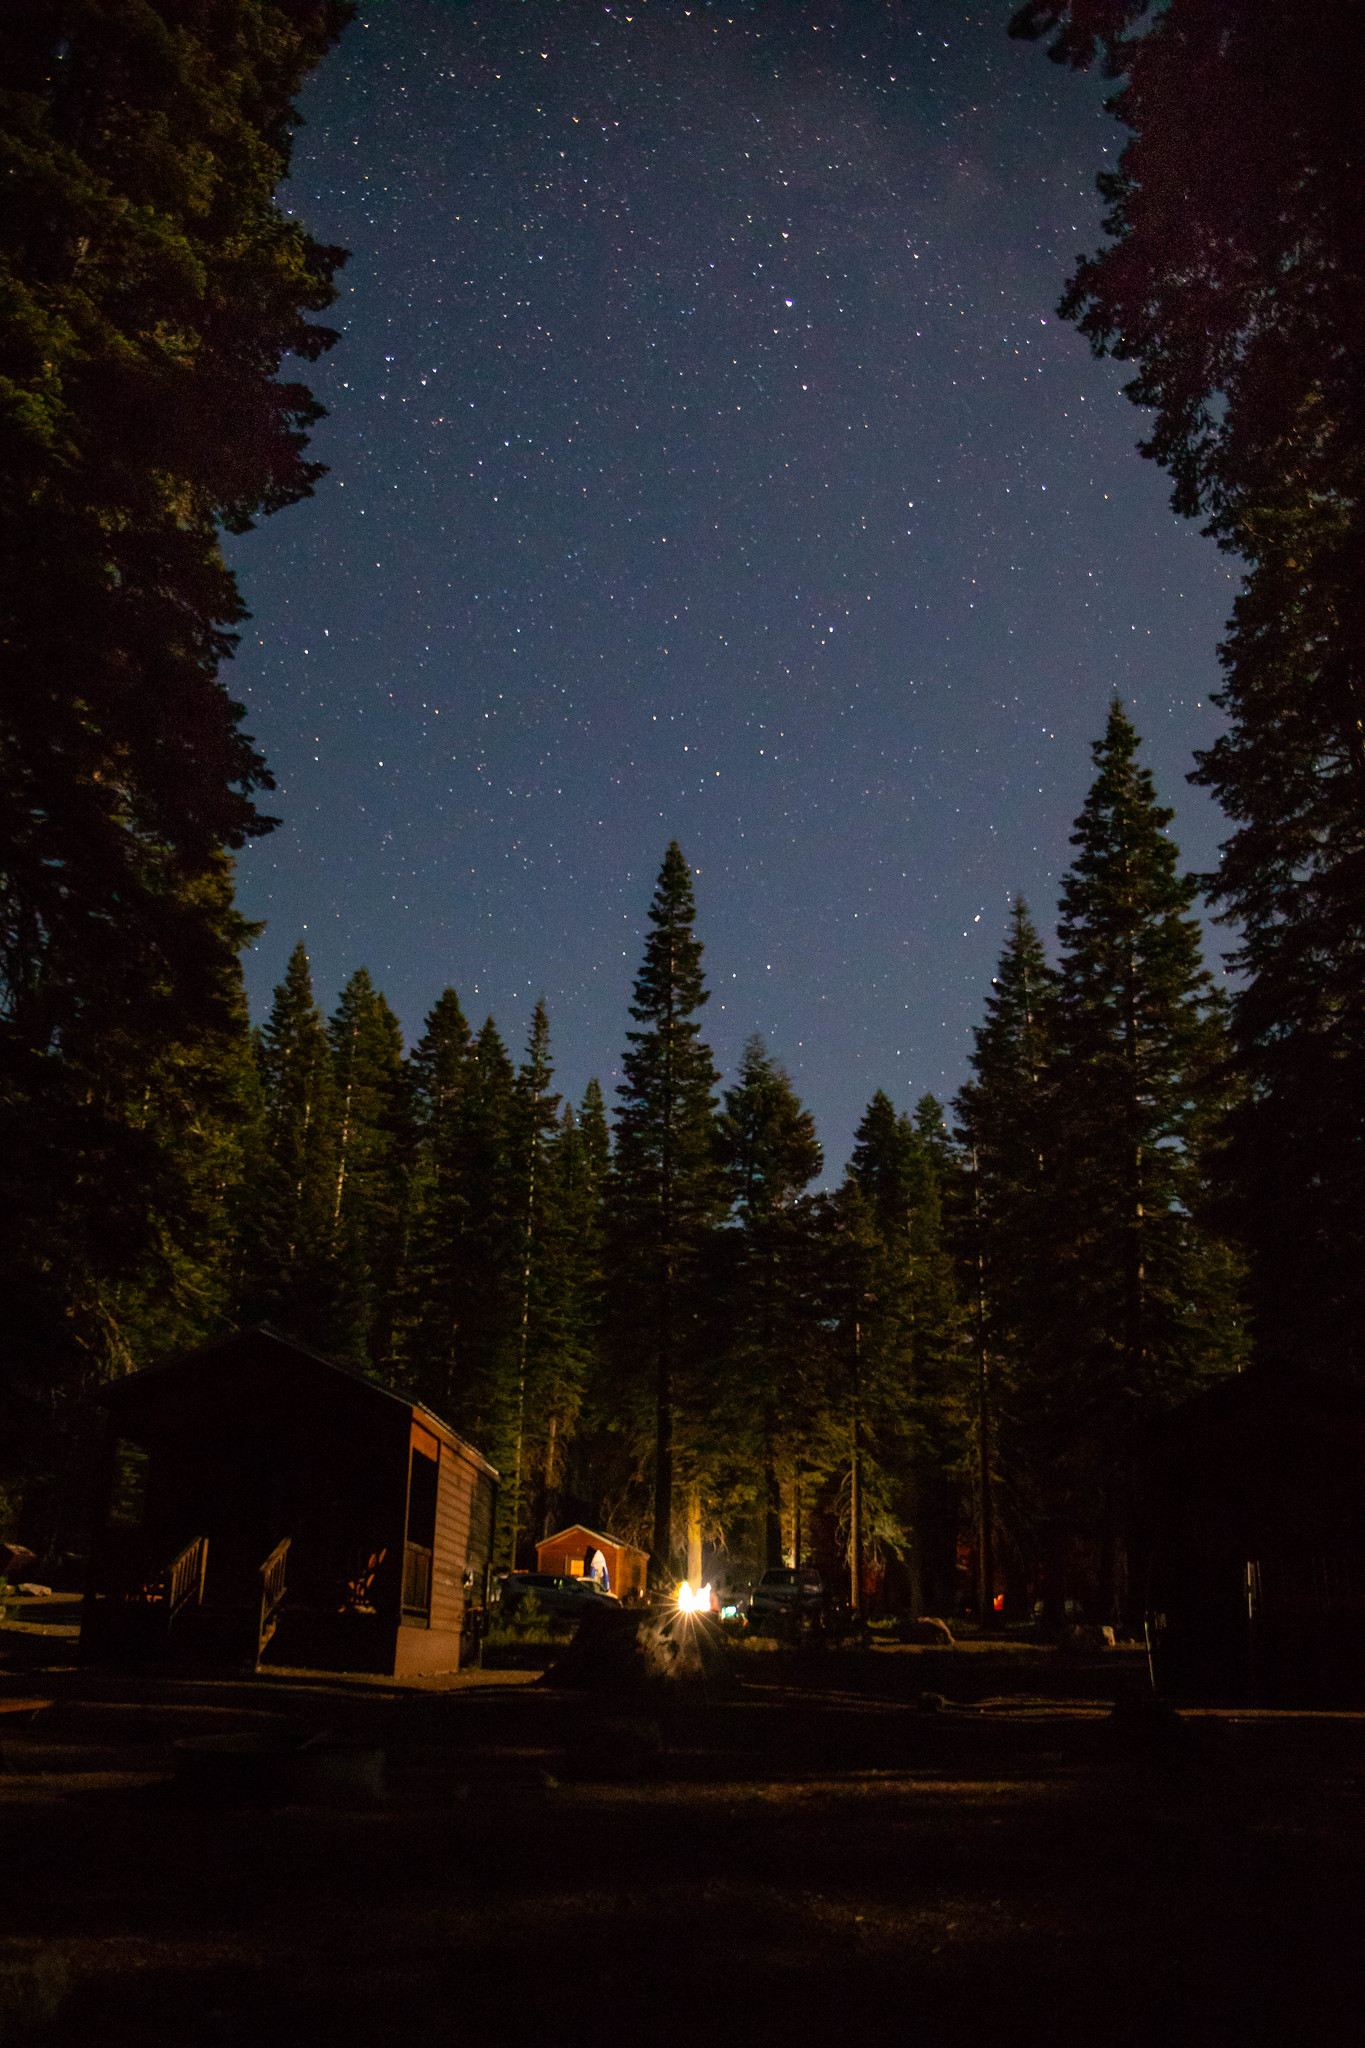 07.21. Lassen National Park